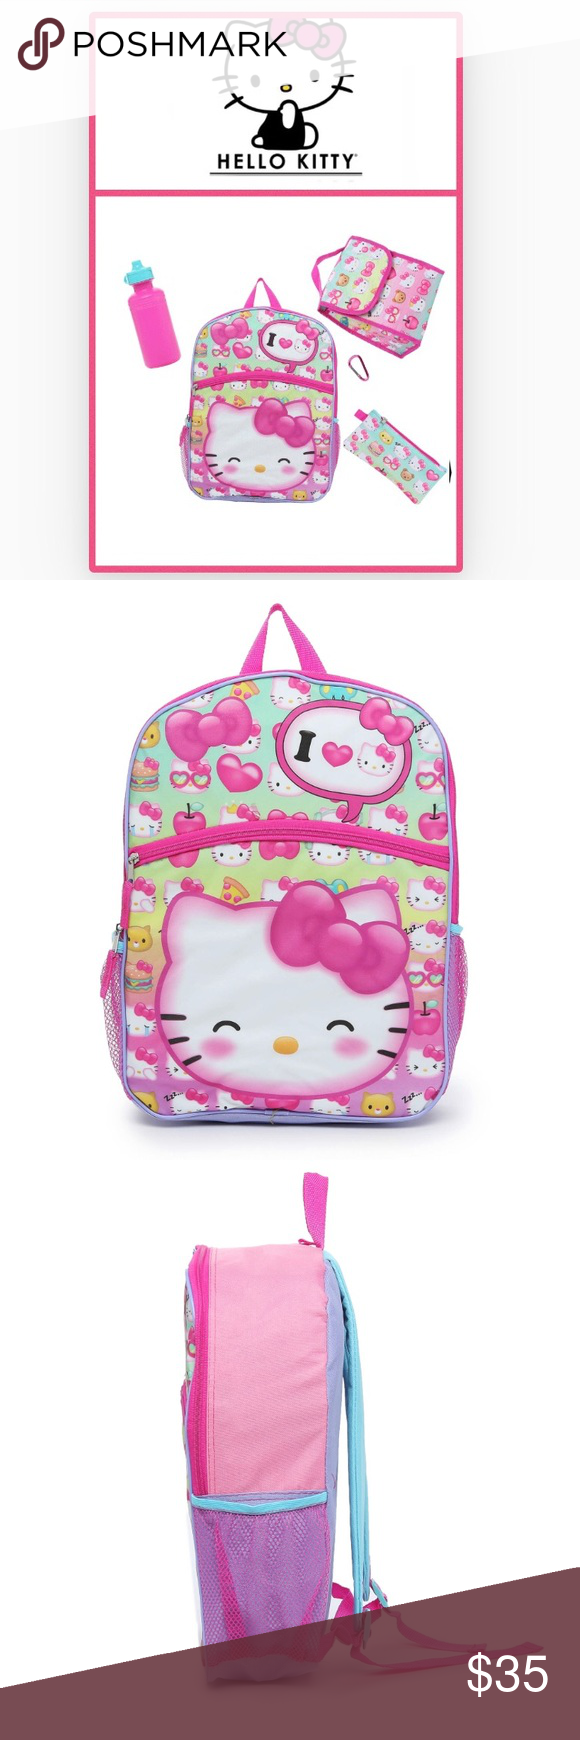 77f60c0a8 Hello Kitty 5-Piece Backpack Set🆕 Gear up with all the school essentials